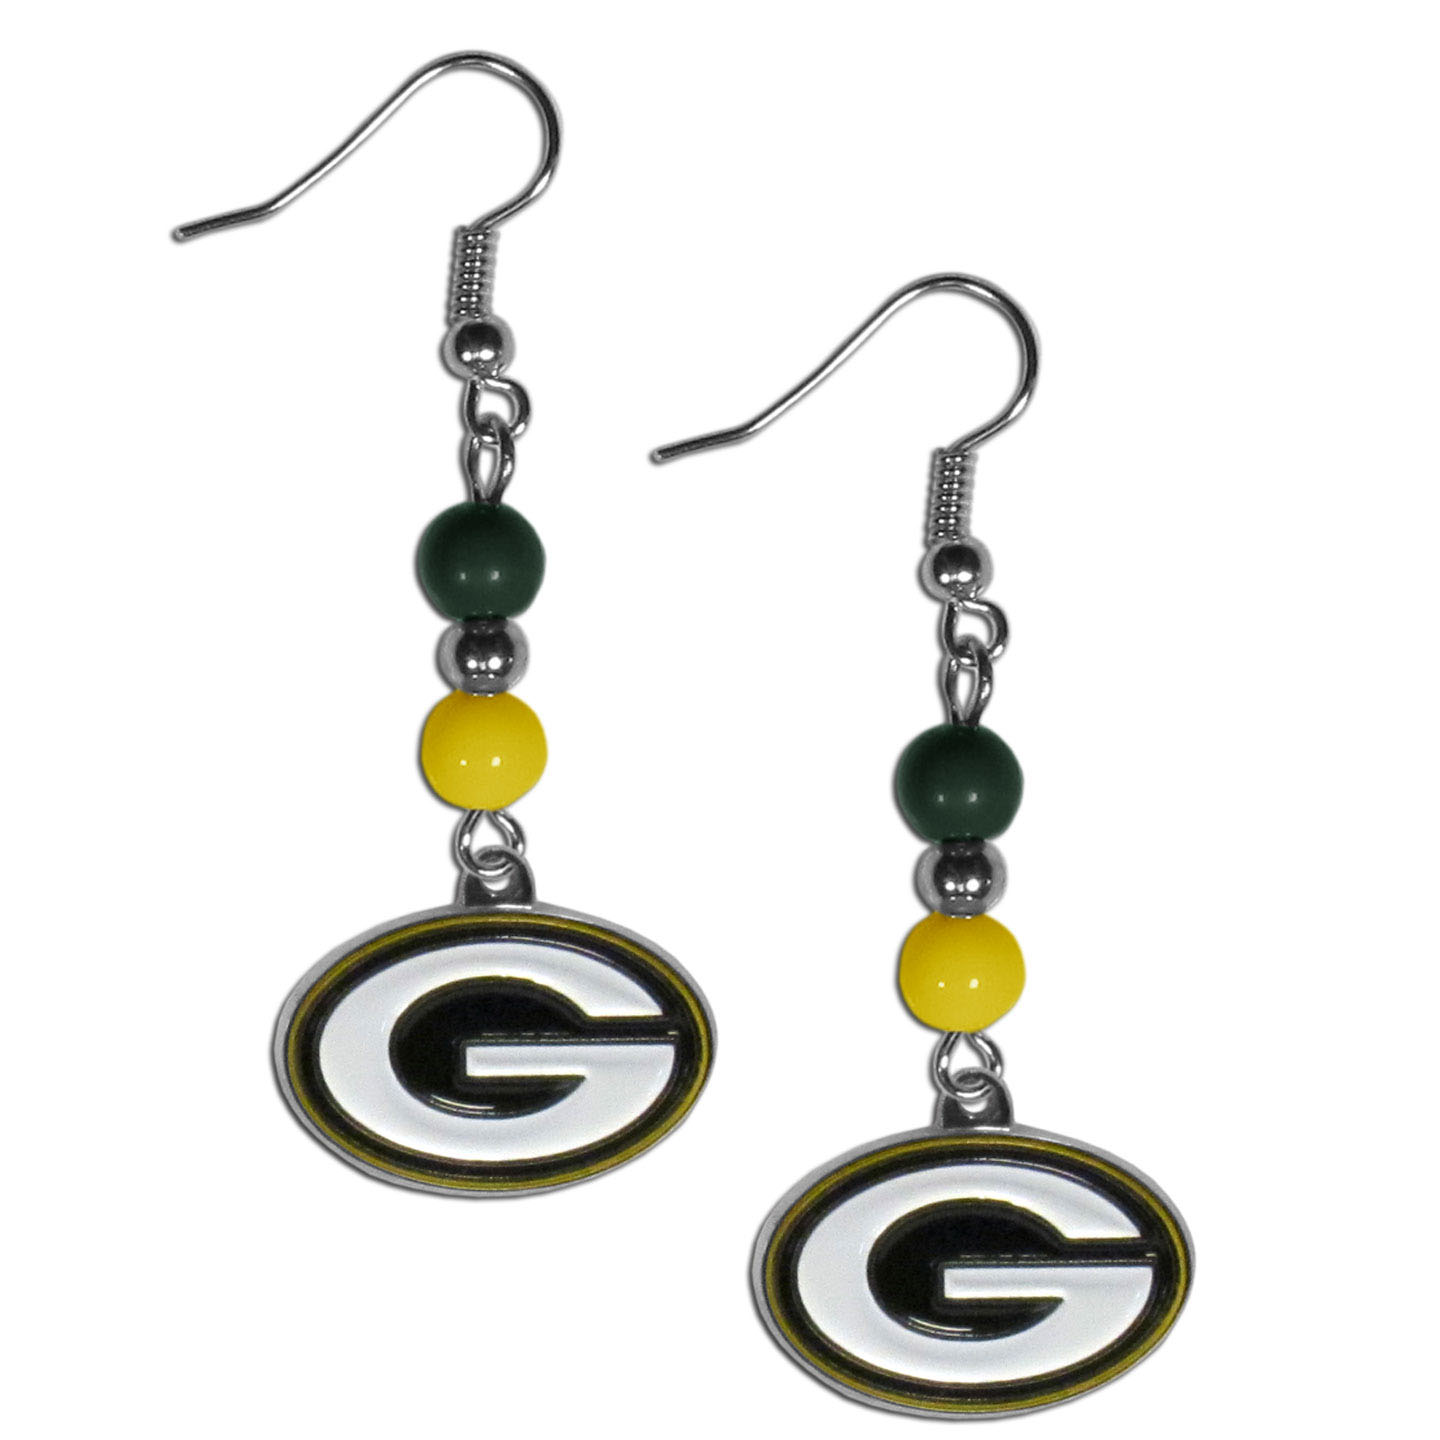 Green Bay Packers Fan Bead Dangle Earrings - Love your team, show it off with our Green Bay Packers bead dangle earrings! These super cute earrings hang approximately 2 inches and features 2 team colored beads and a high polish team charm. A must have for game day!